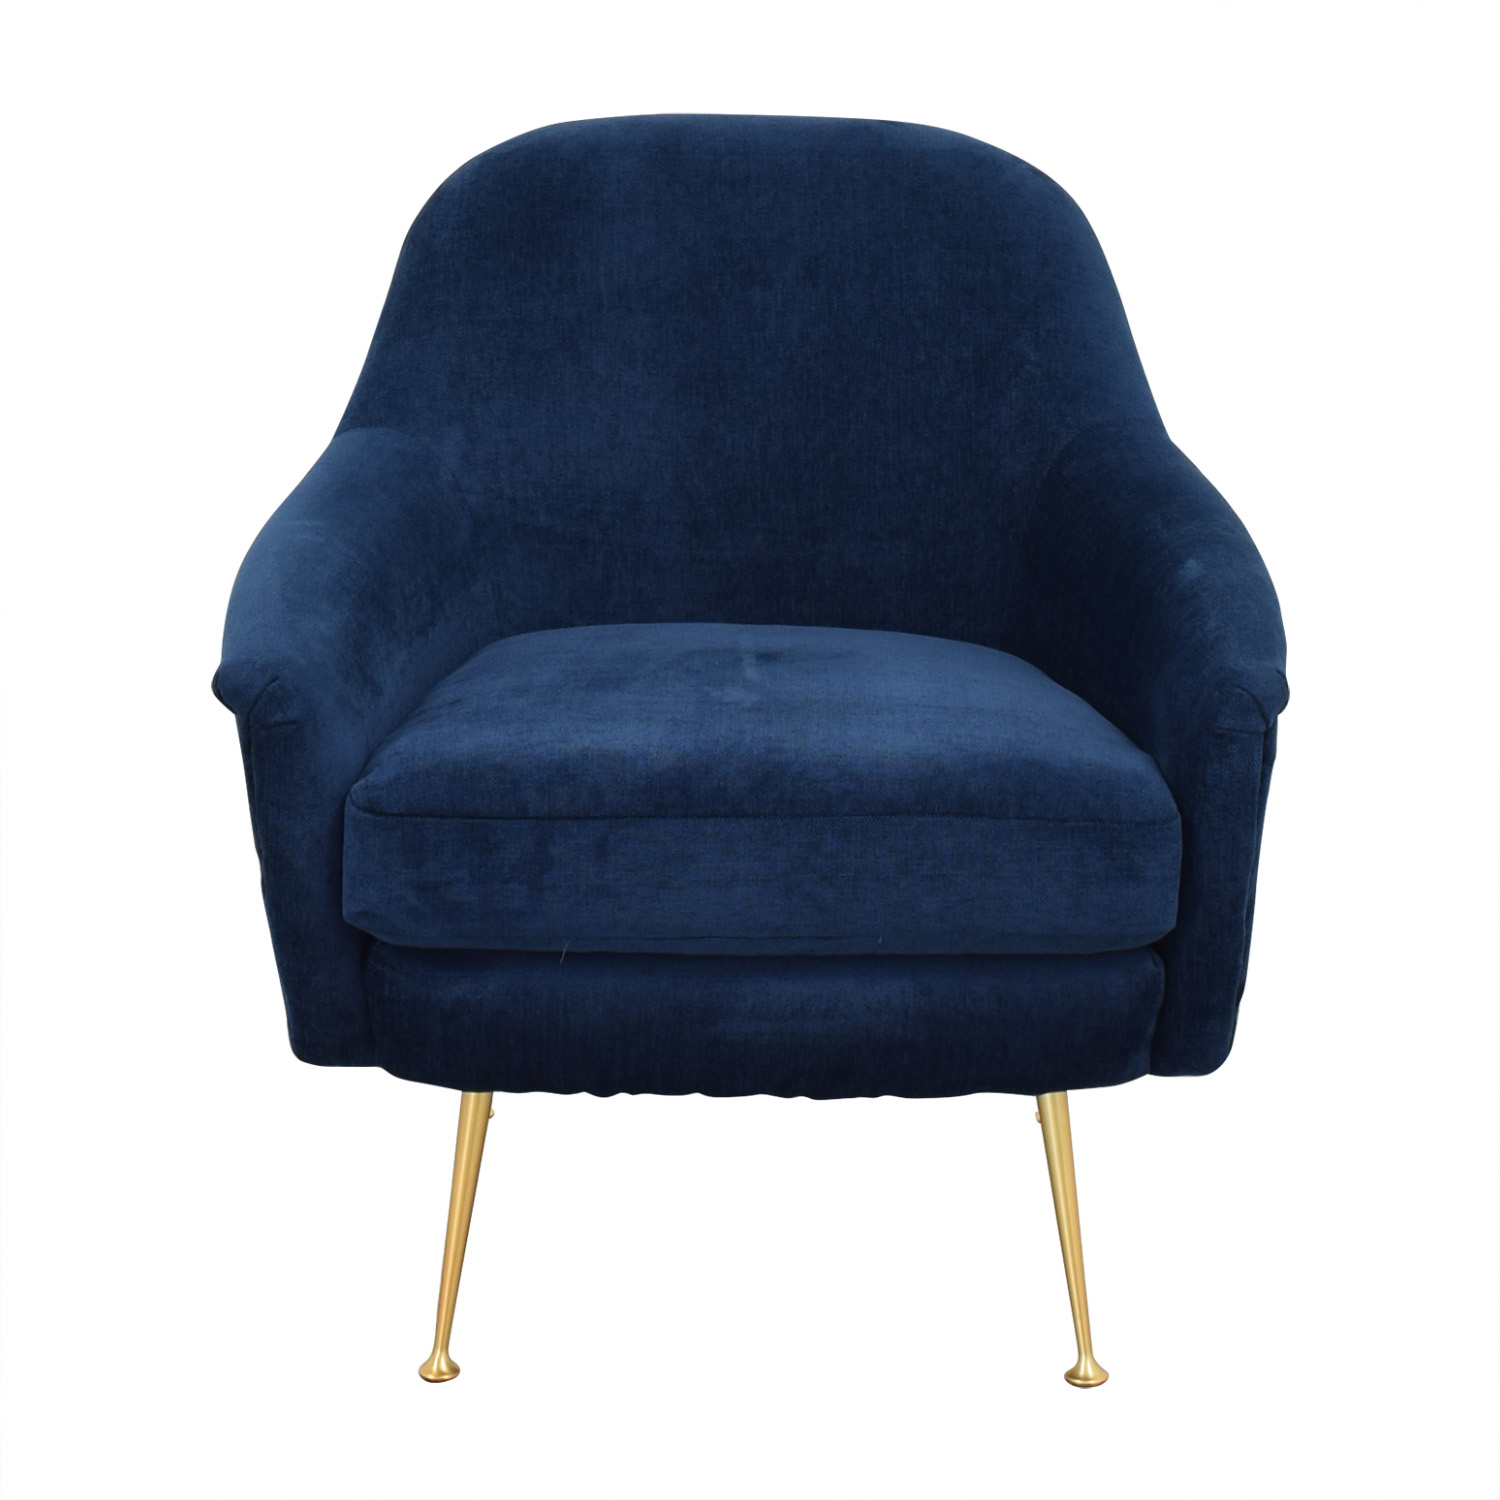 West Elm Phoebe Chair / Chairs